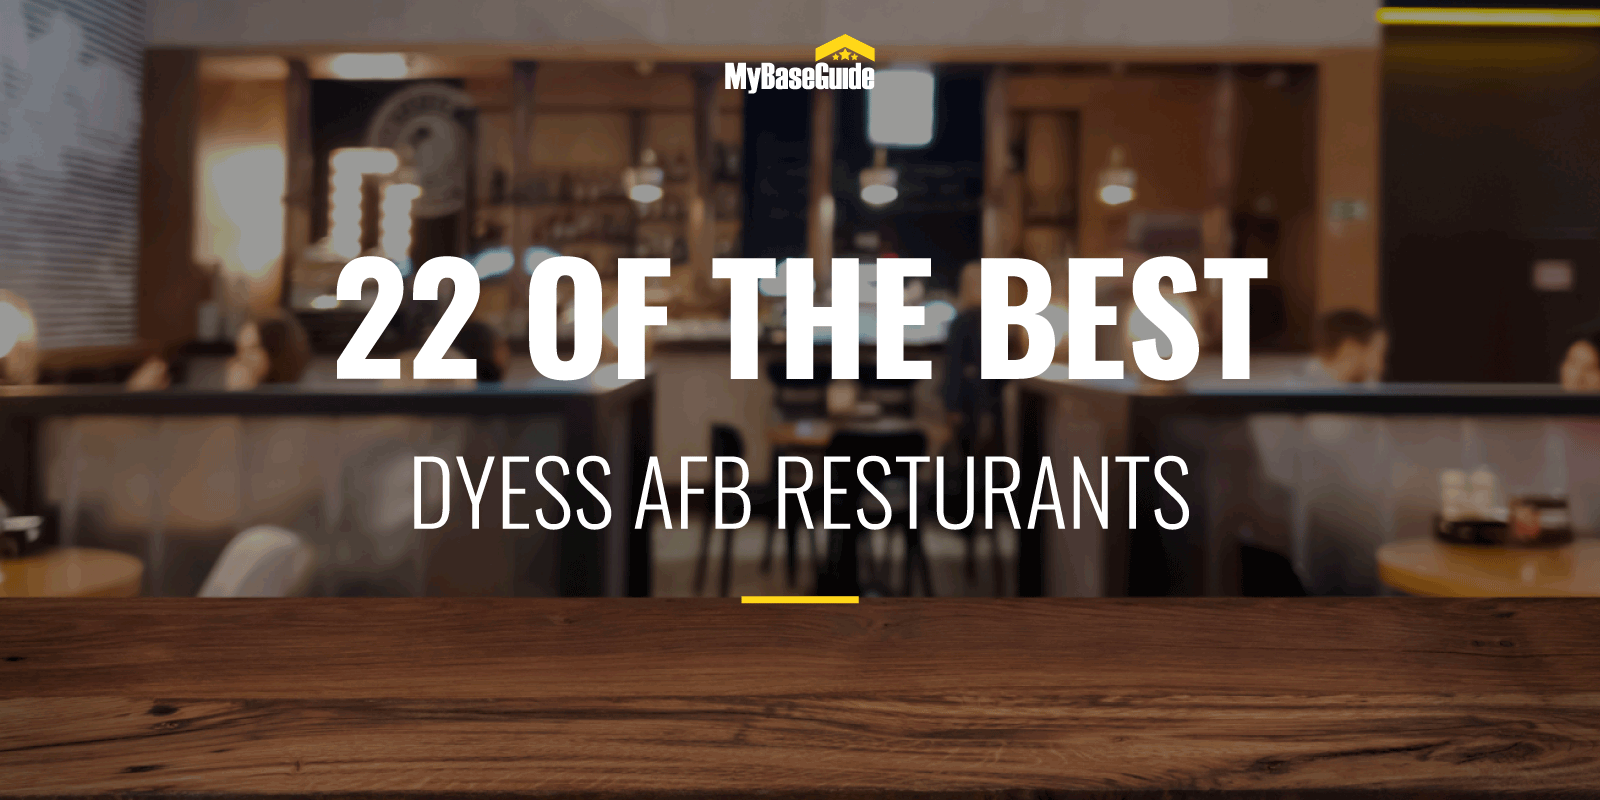 22 of the Best Dyess AFB Restaurants